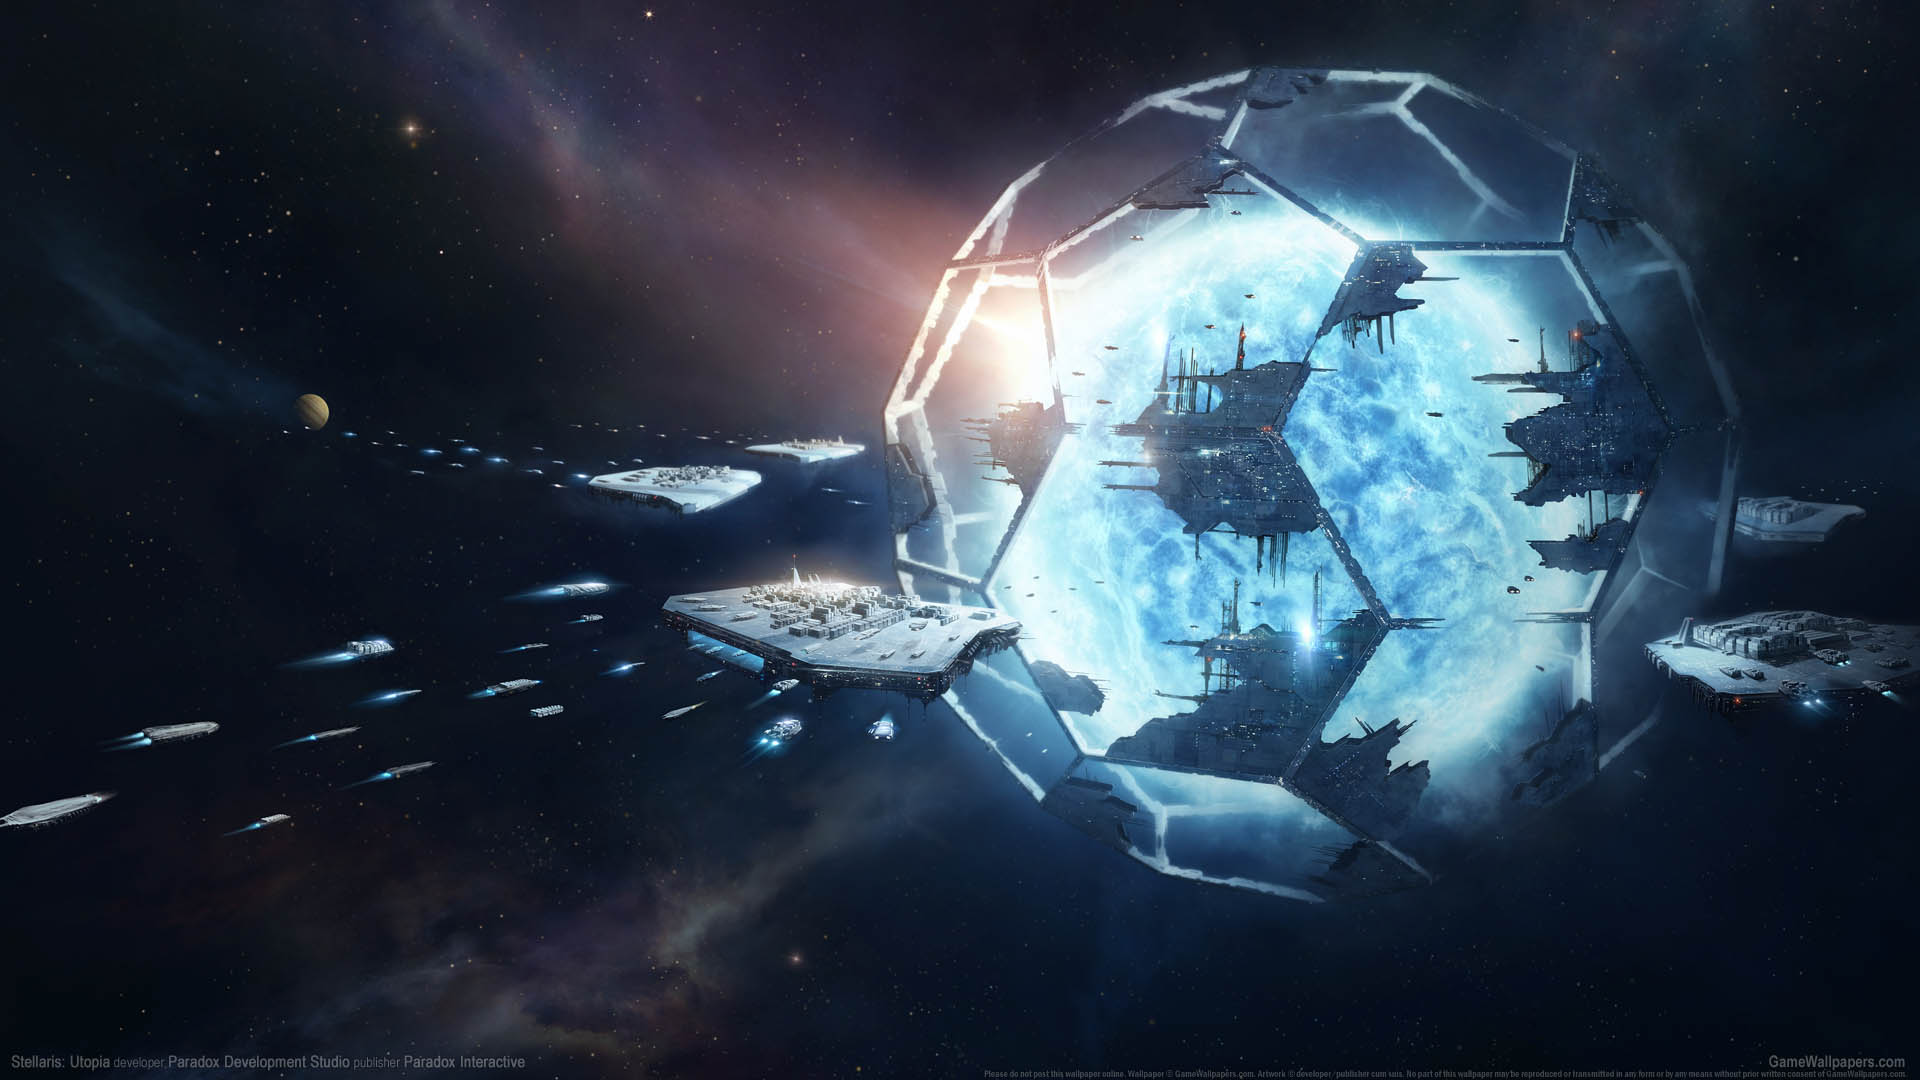 Stellaris Utopia wallpaper 01 1920x1080